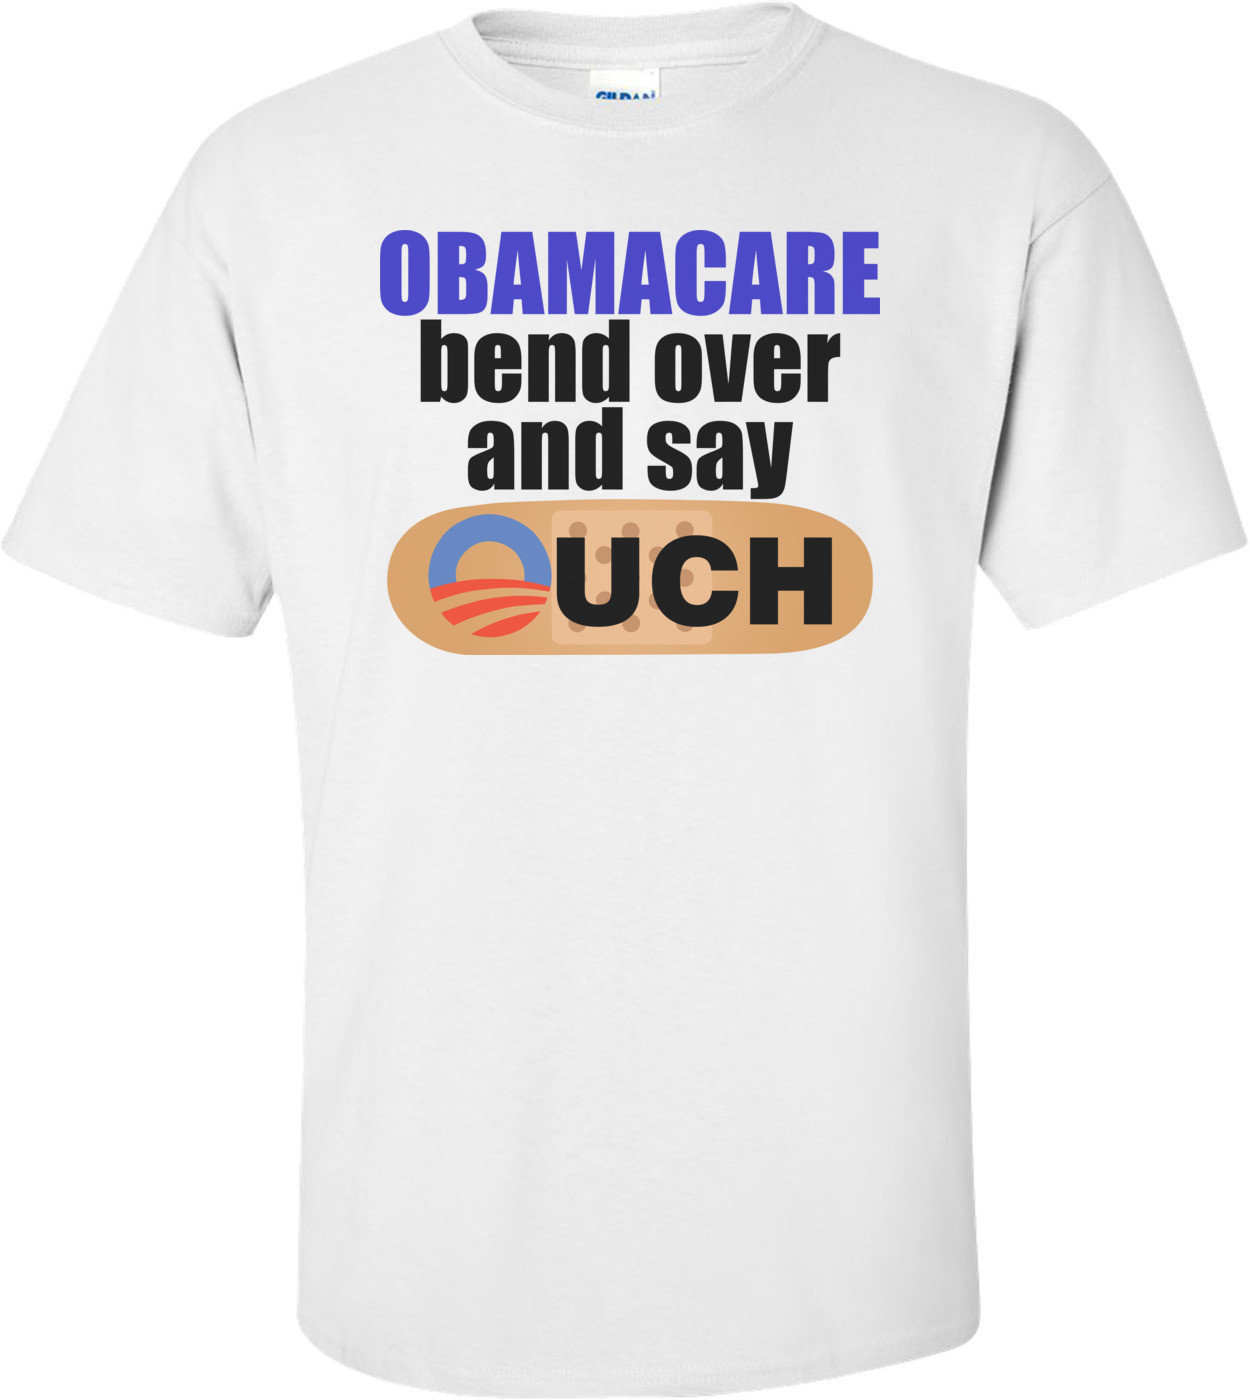 Obamacare Bend Over And Say Ouch - Anti-obama Shirt